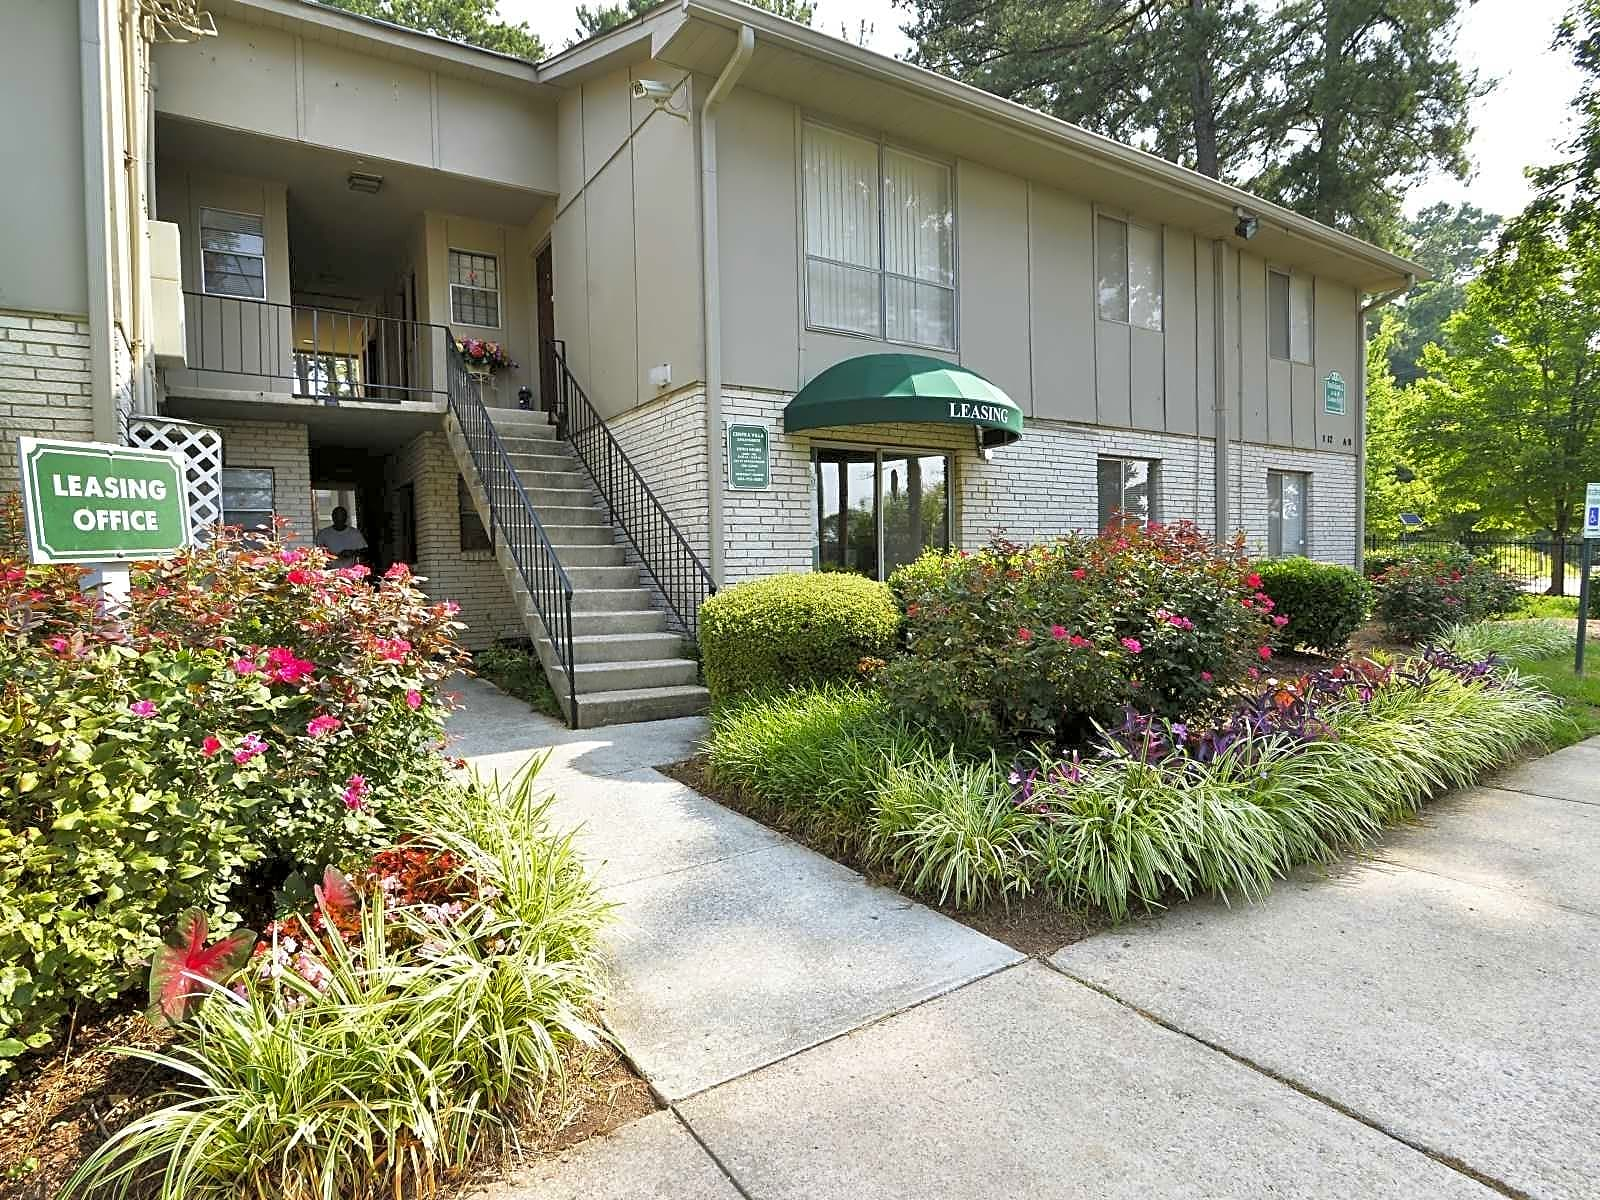 Photo: Atlanta Apartment for Rent - $529.00 / month; 1 Bd & 1 Ba